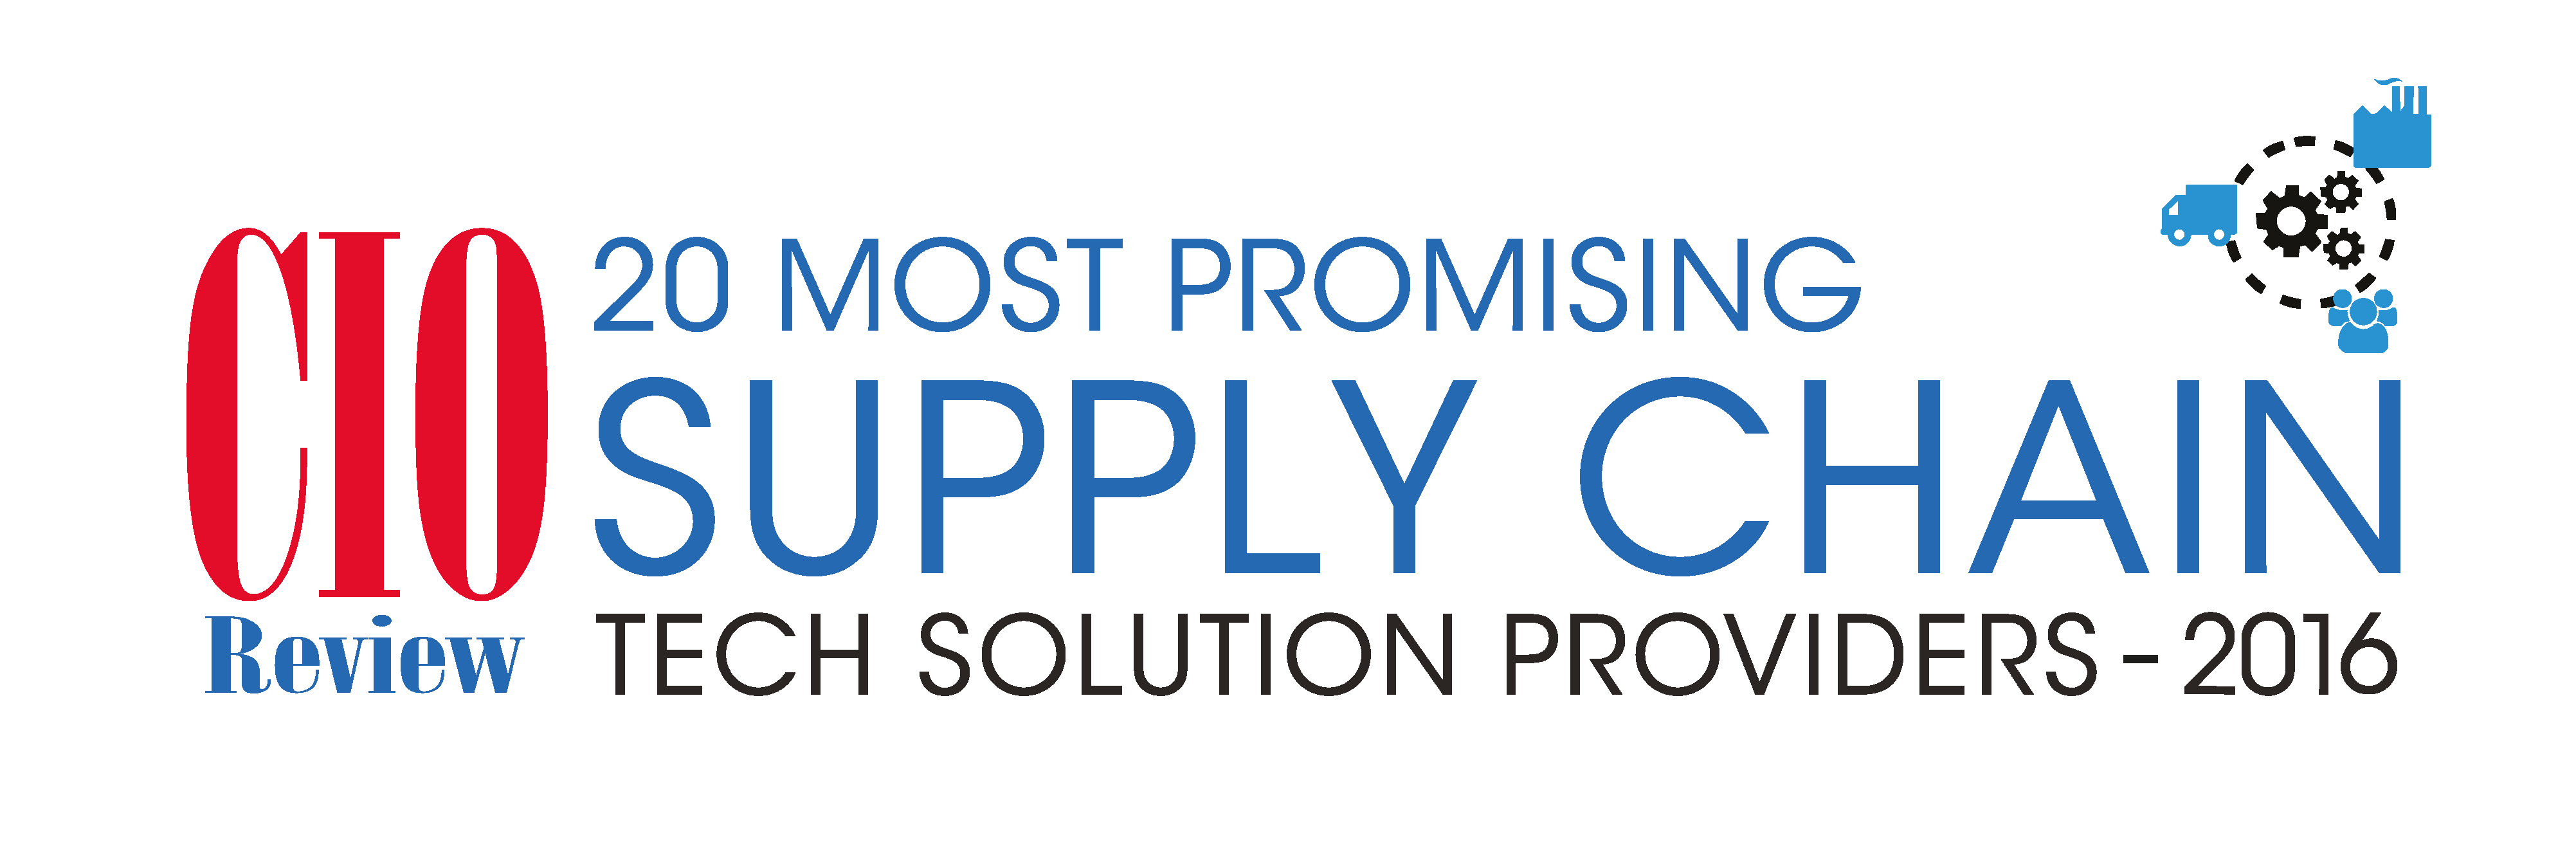 CIOReview most promising supply chain tech solution providers 2016